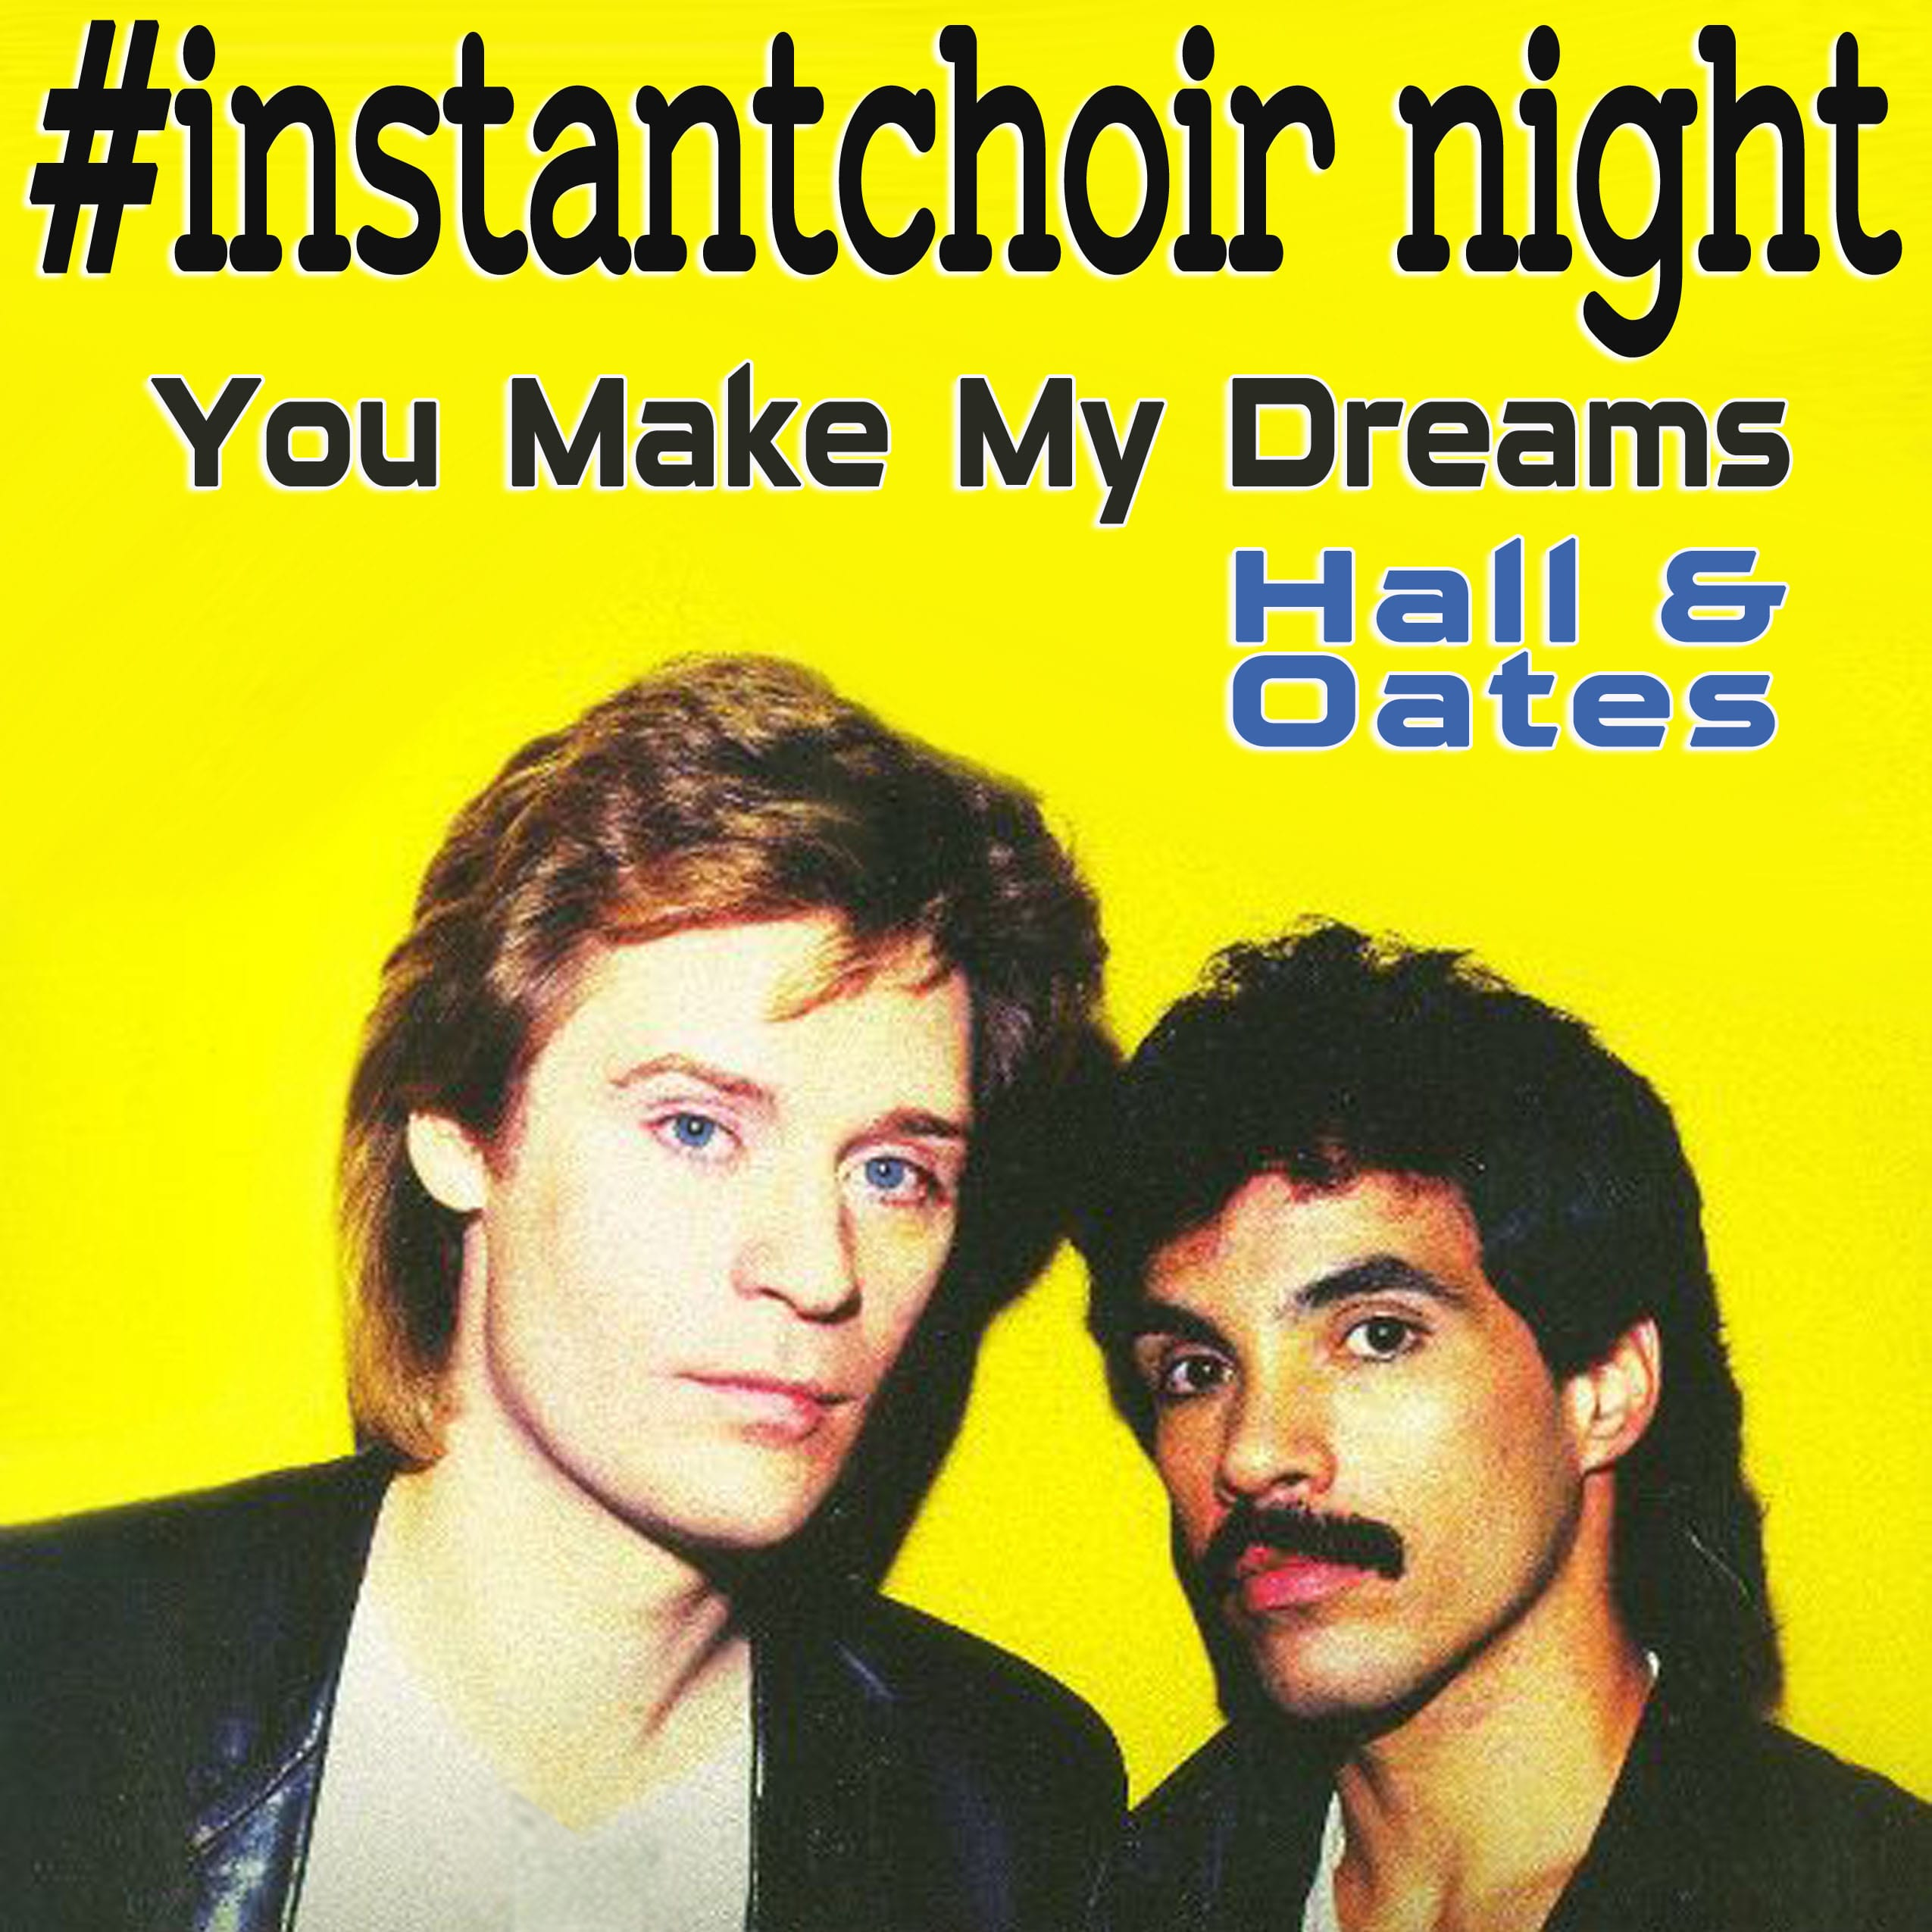 Sing… You Make My Dreams by Hall & Oates at an #InstantChoir in North Van!